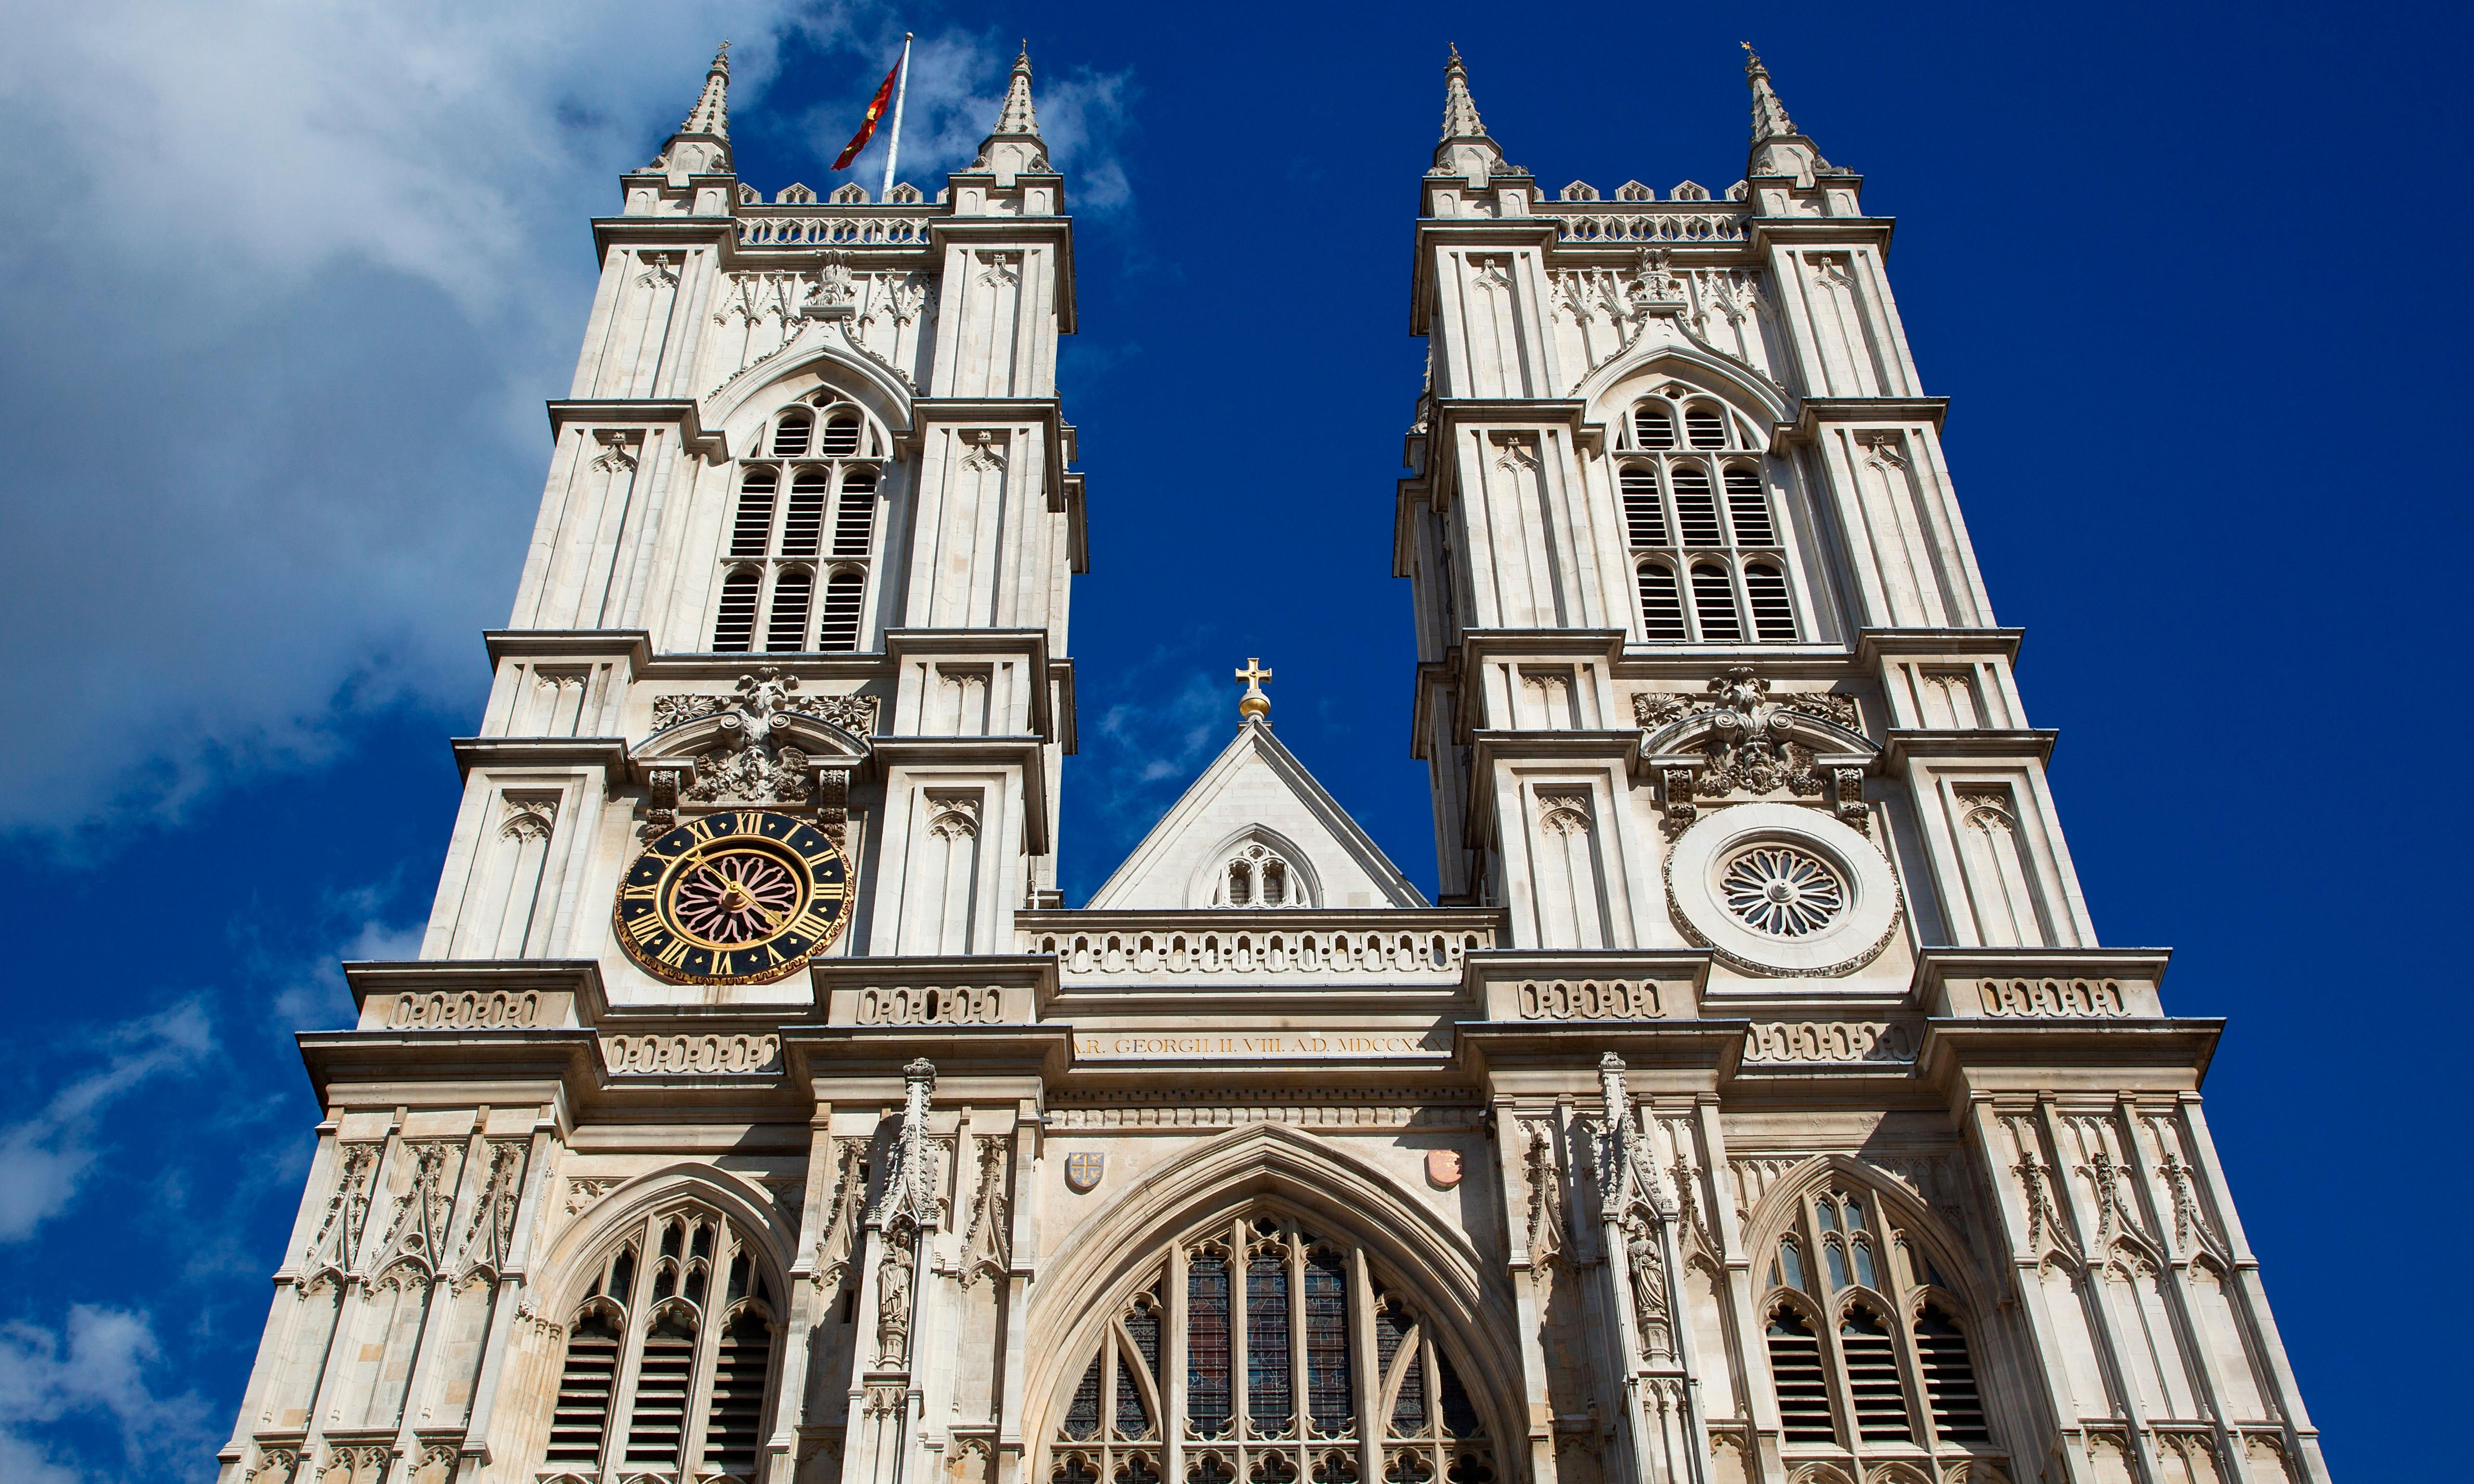 Westminster Abbey treasures go on display for 750th anniversary